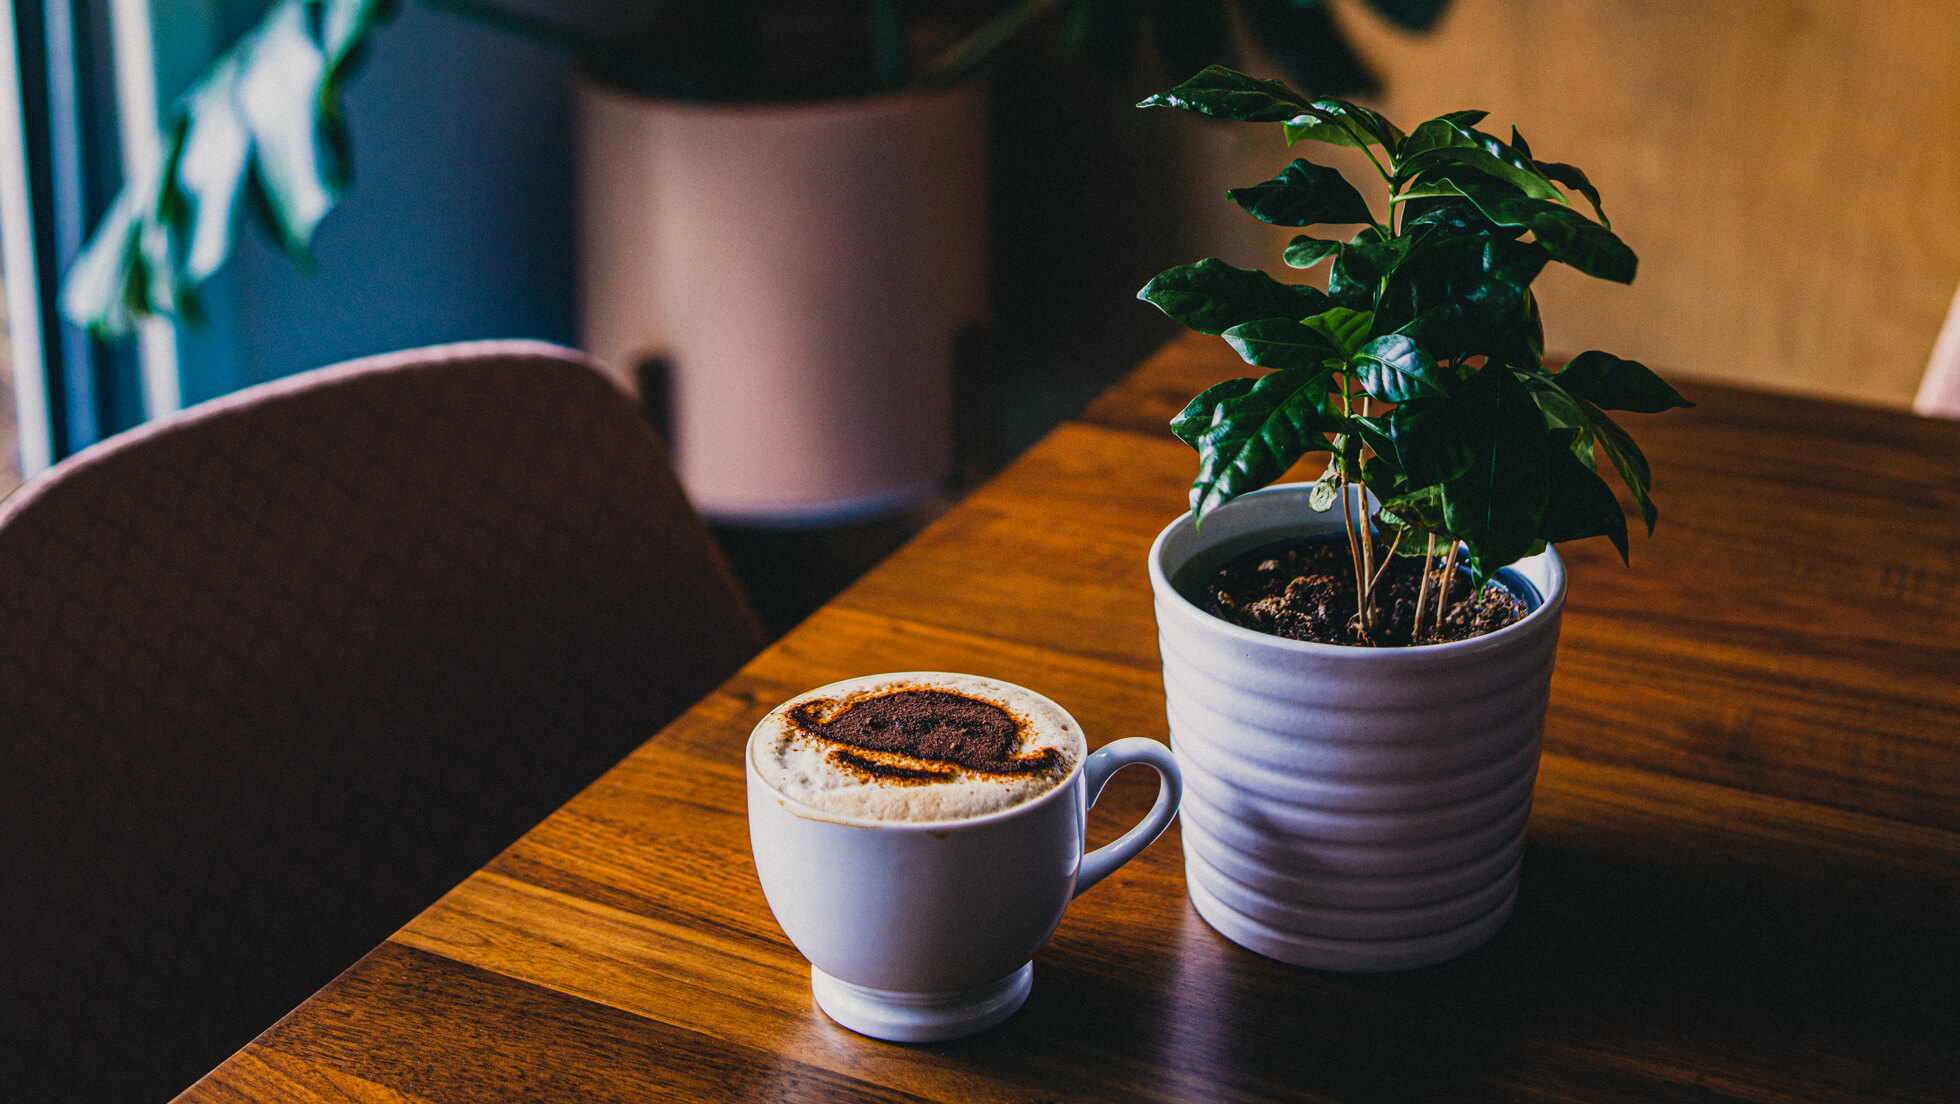 Image of latte with SIGMADESIGN Logo and Coffee Plant - it's a 404 error page